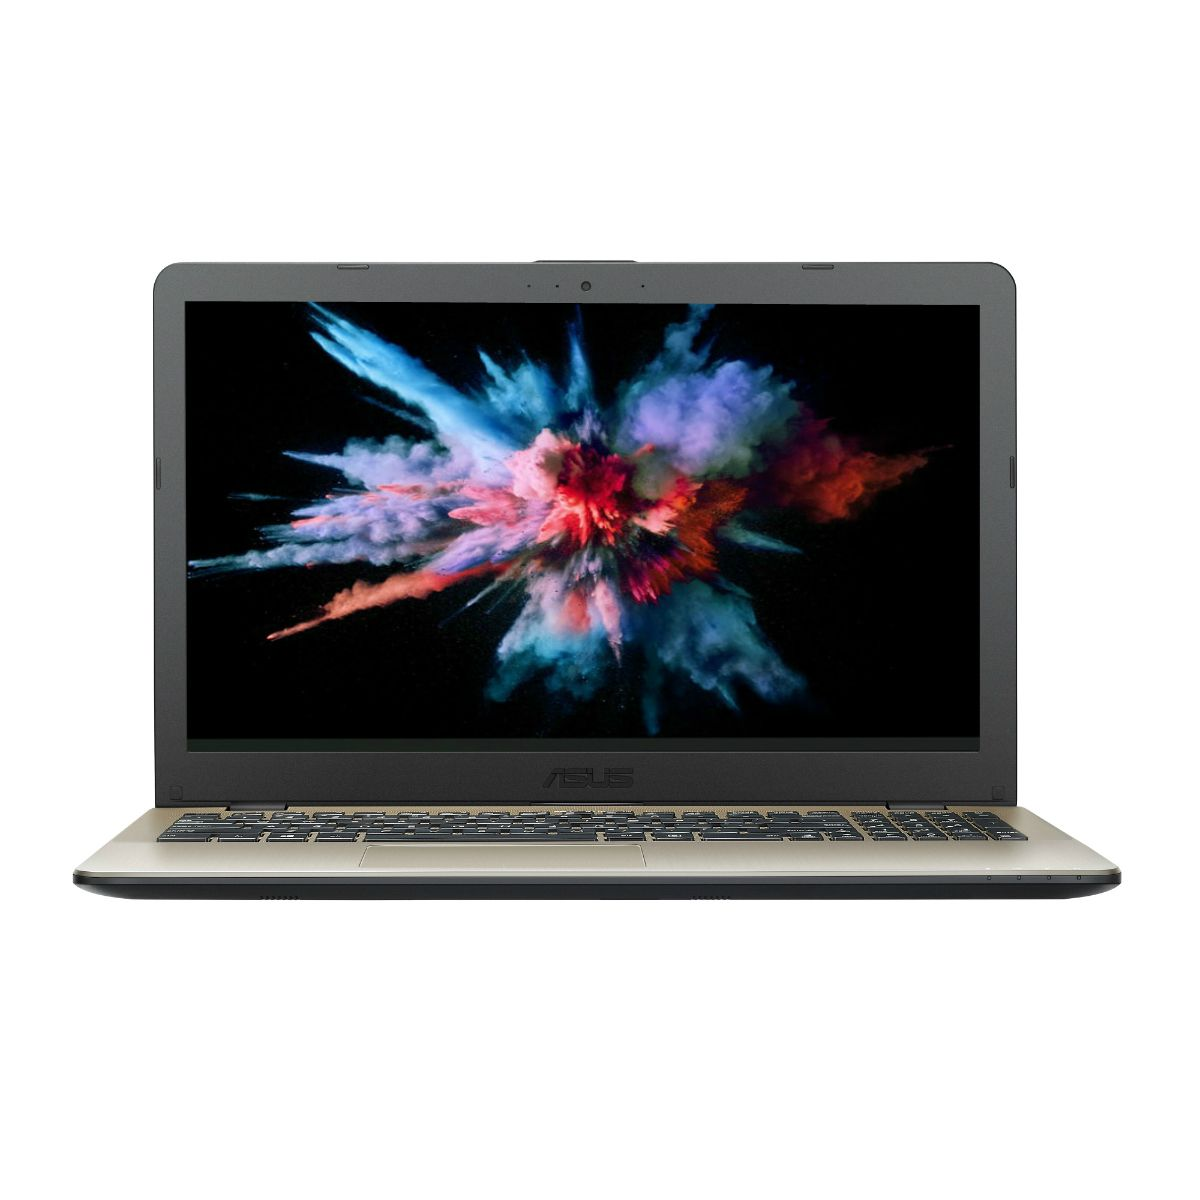 Notebook Asus X542uf-go123 I5 Free GEFORCE MX130